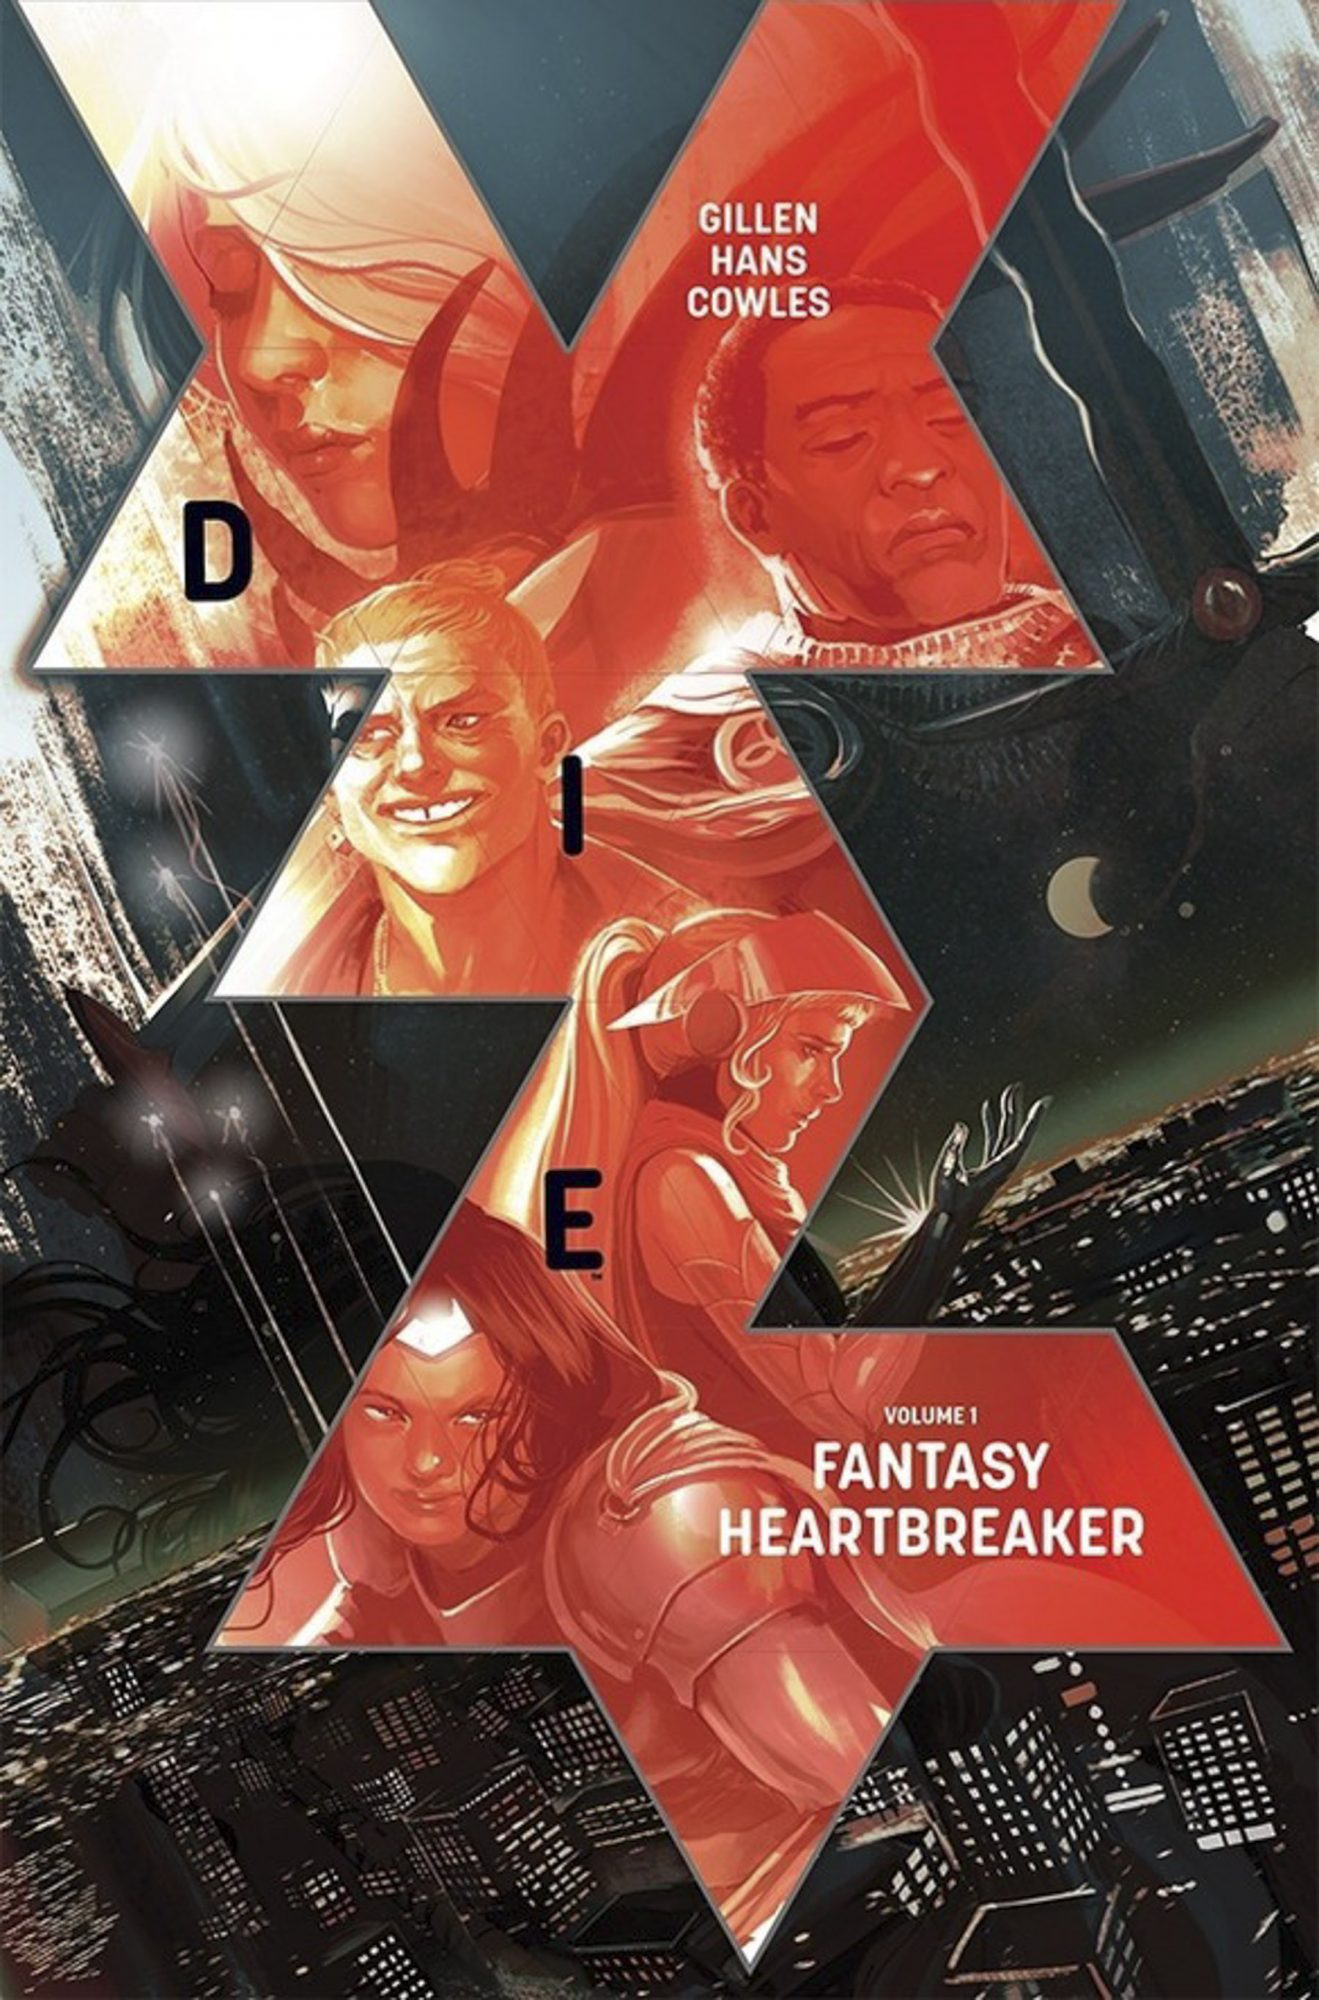 Die volume 1: Fantasy Heartbreaker CR: Image Comics